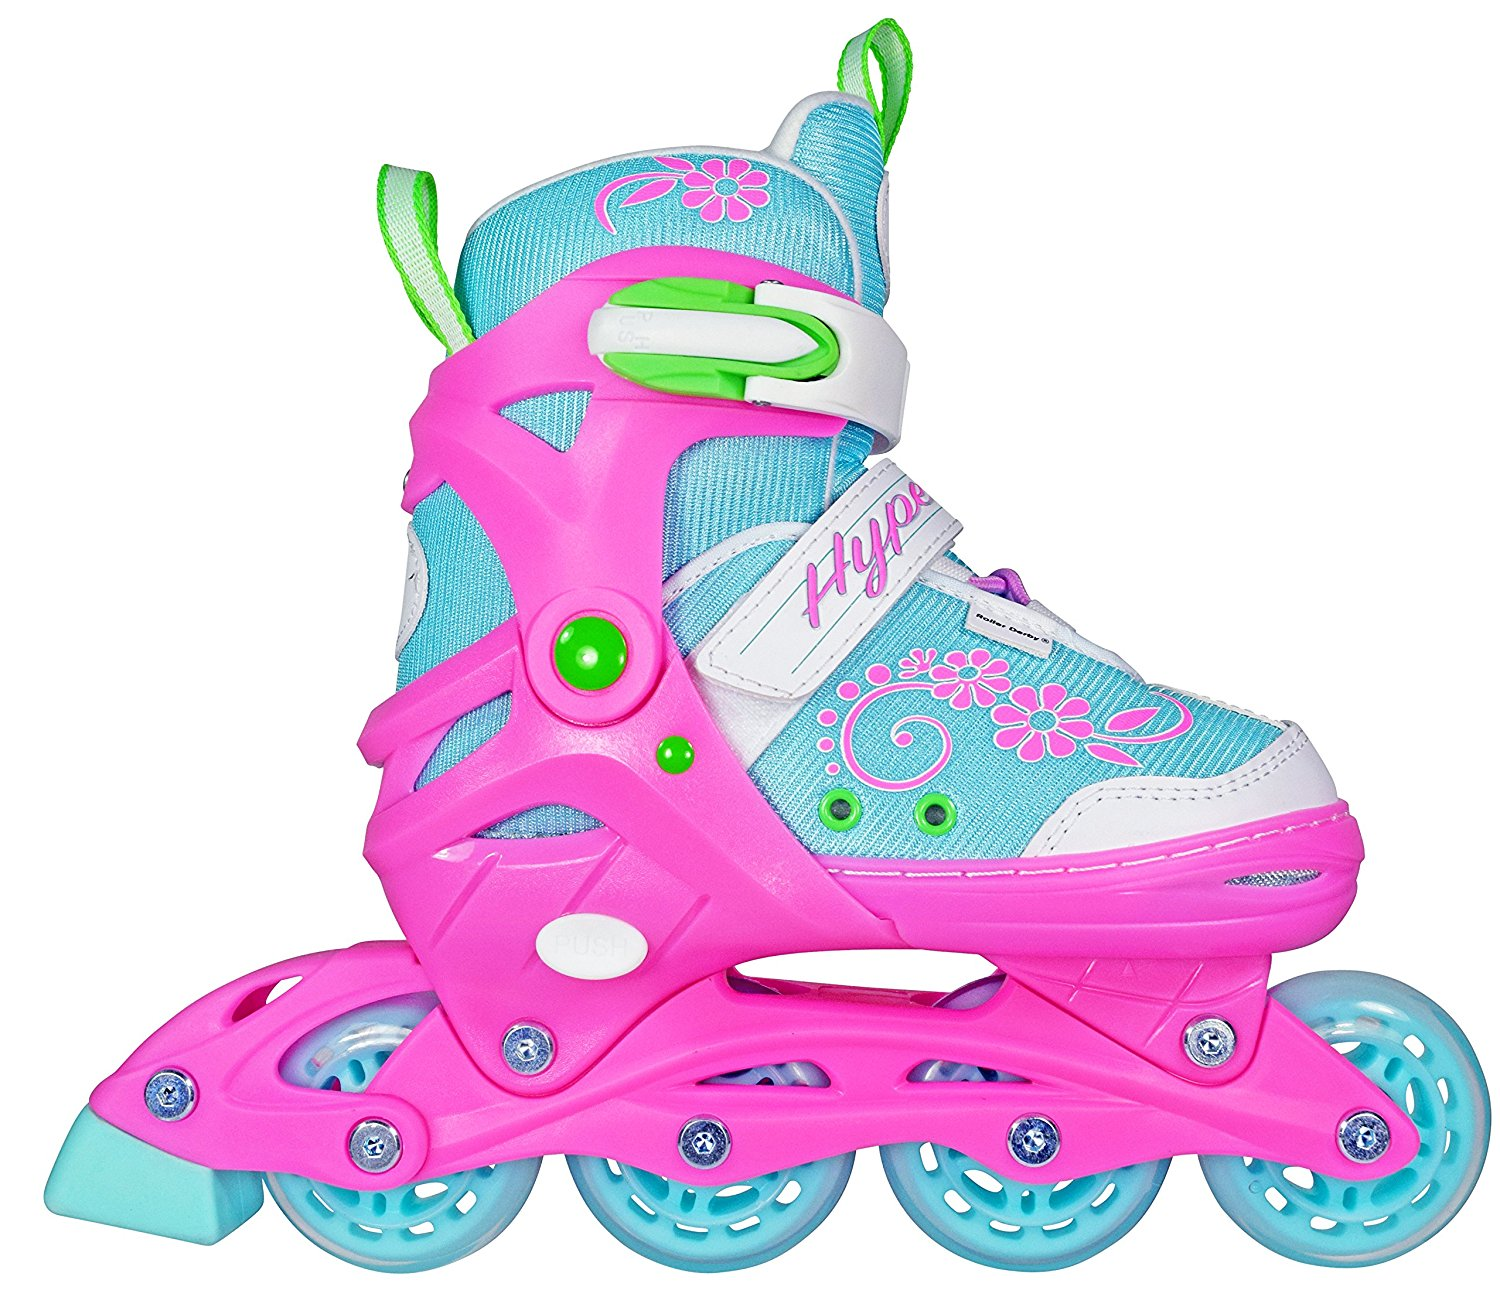 HYPE Sherbet Adjustable Children's Inline Skates by RC Sports